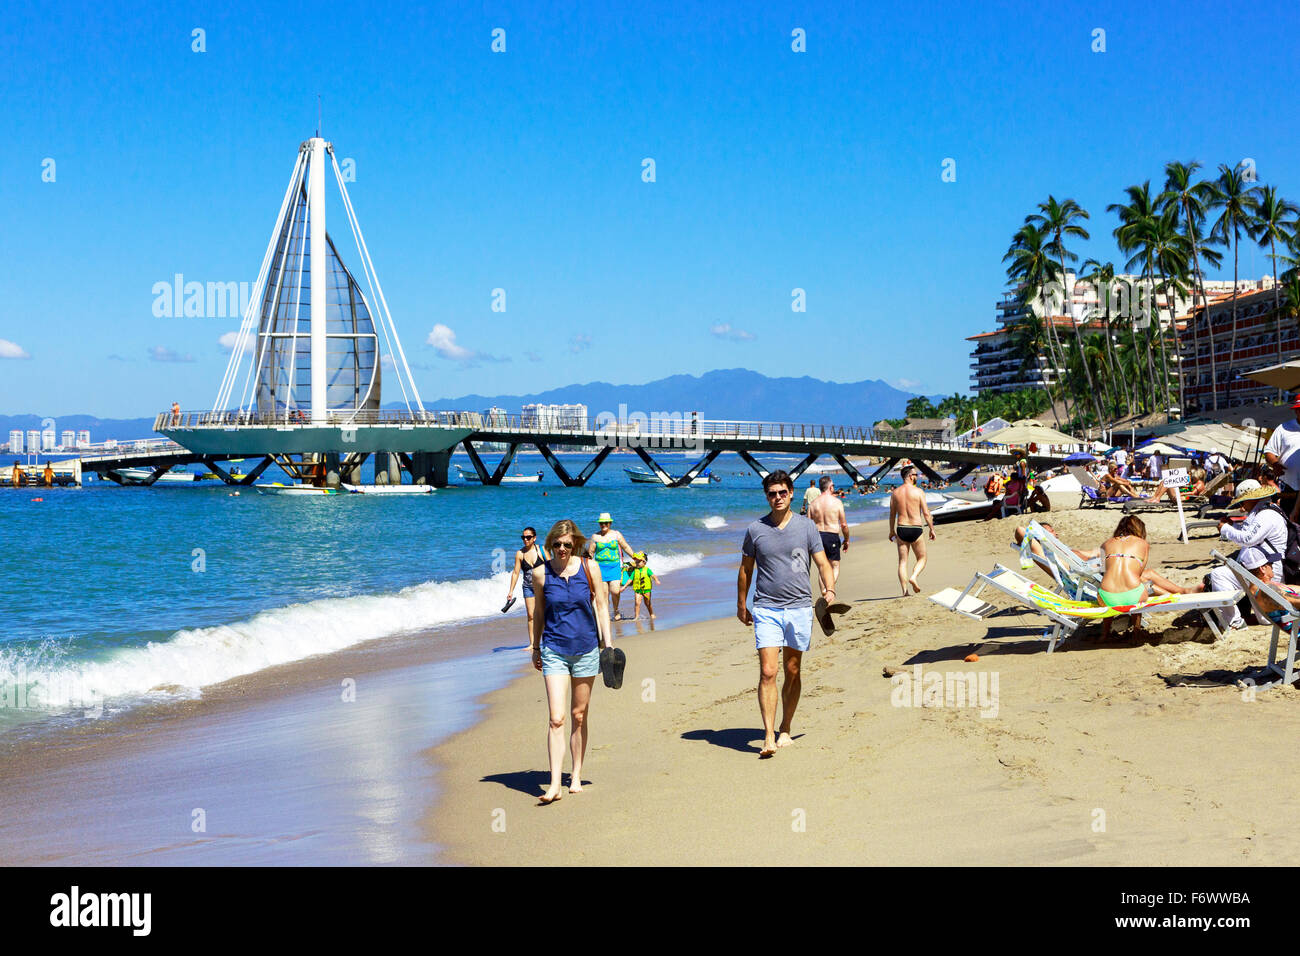 Beach at Zona Romantica, old town of Puerto Vallarta, Mexico with the Los Muertos Pier in the background - Stock Image